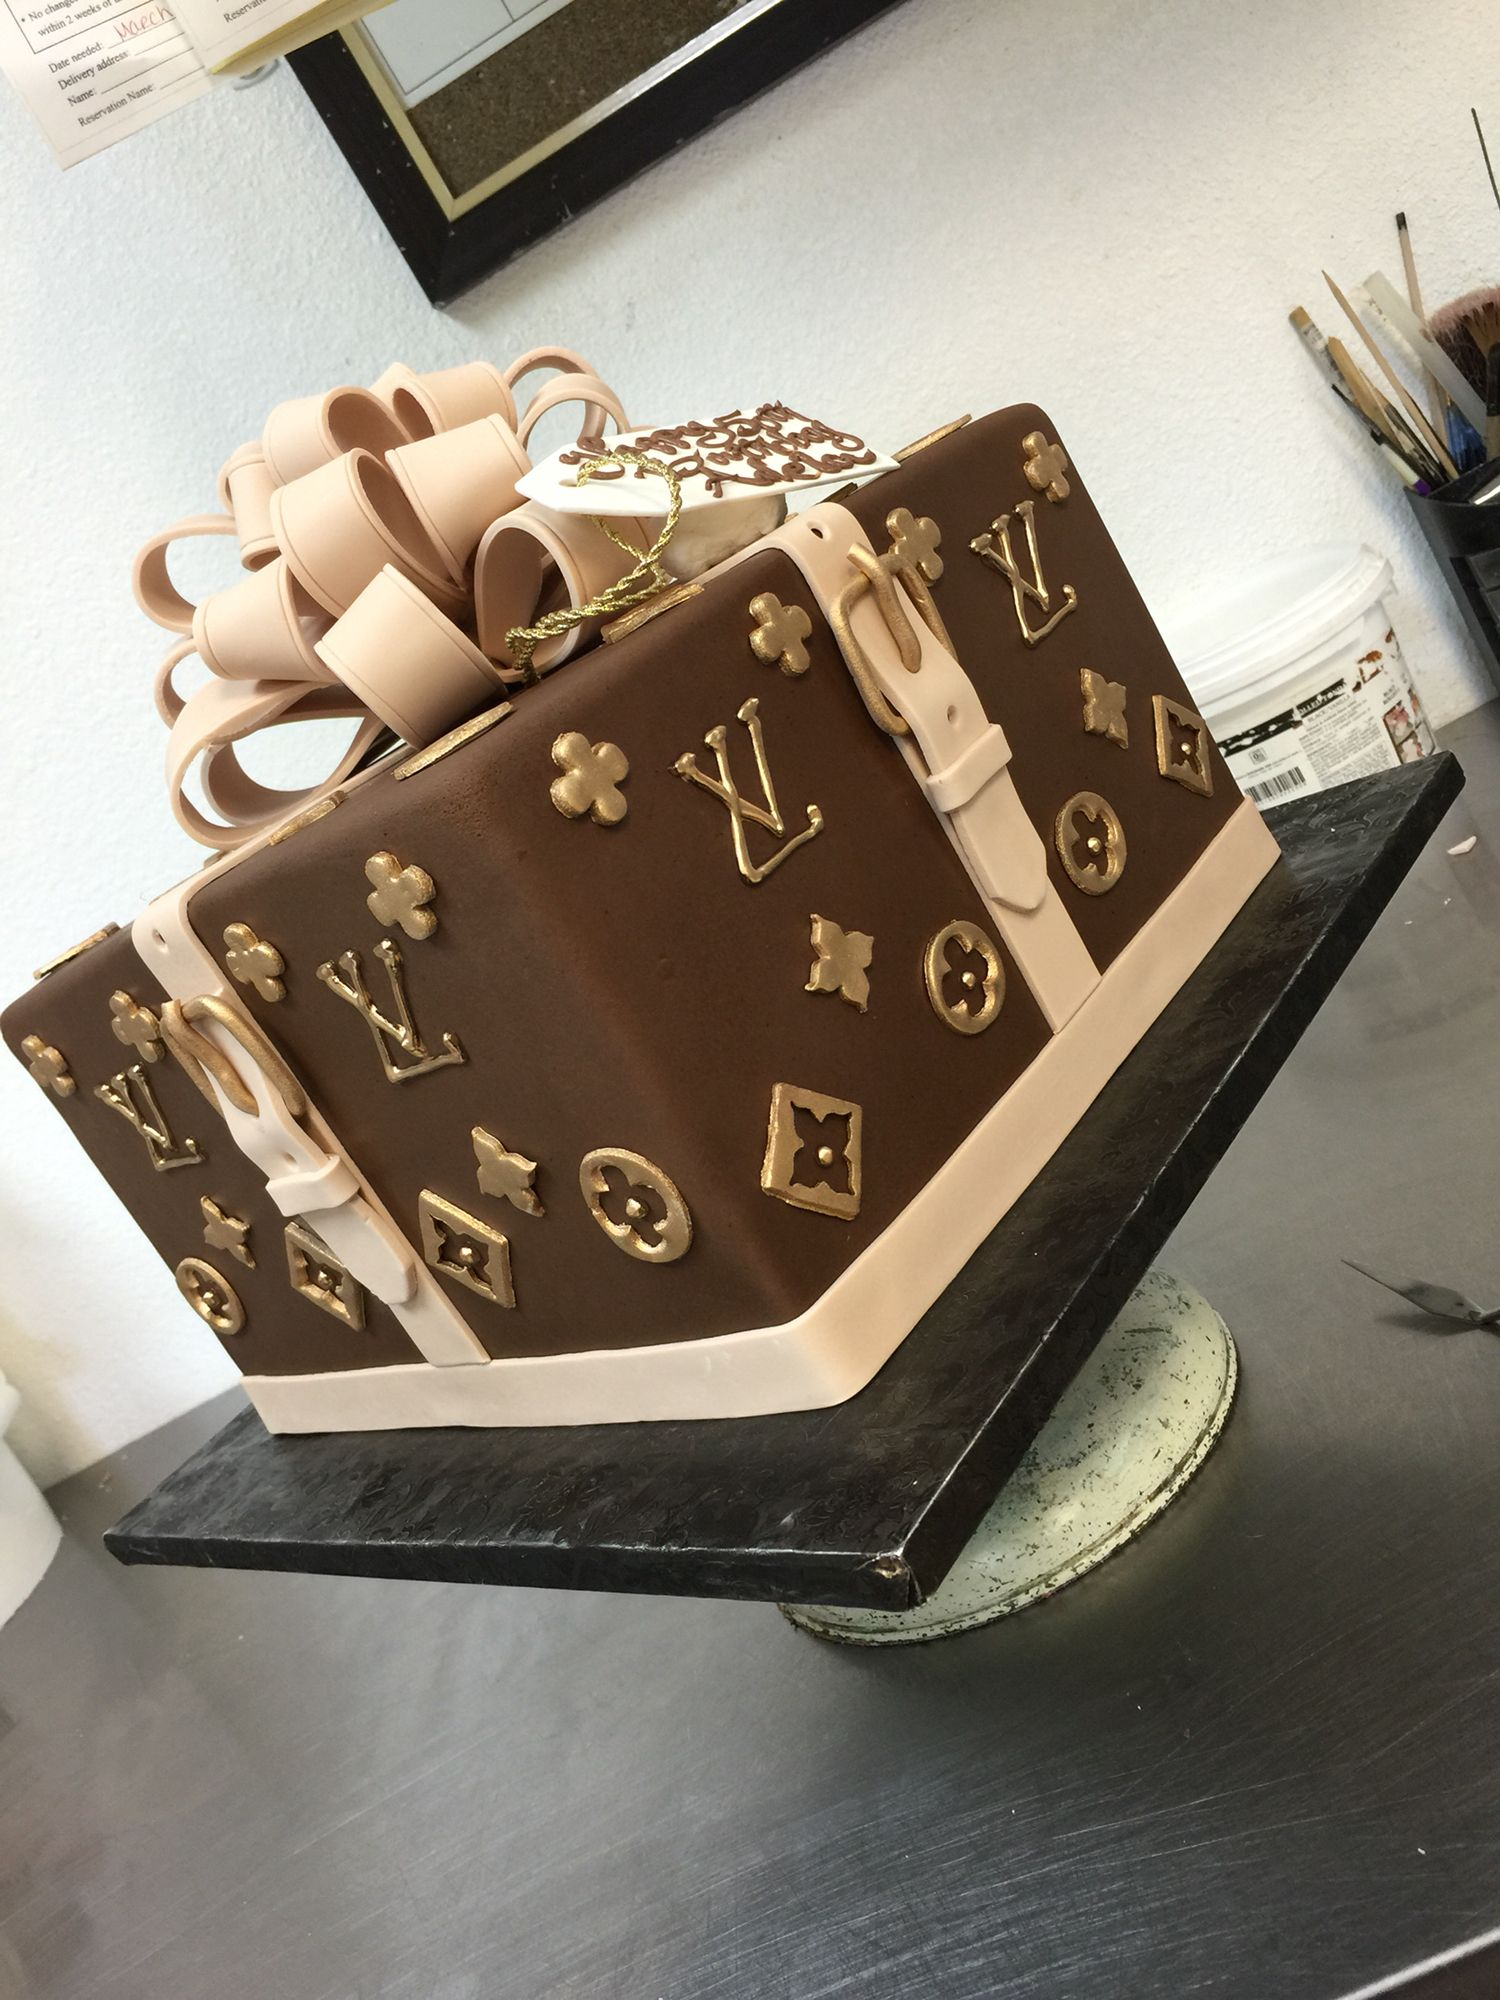 Kuchen Deko Name Louis Vuitton Cake Essen Und Backen Cake Louis Vuitton Cake